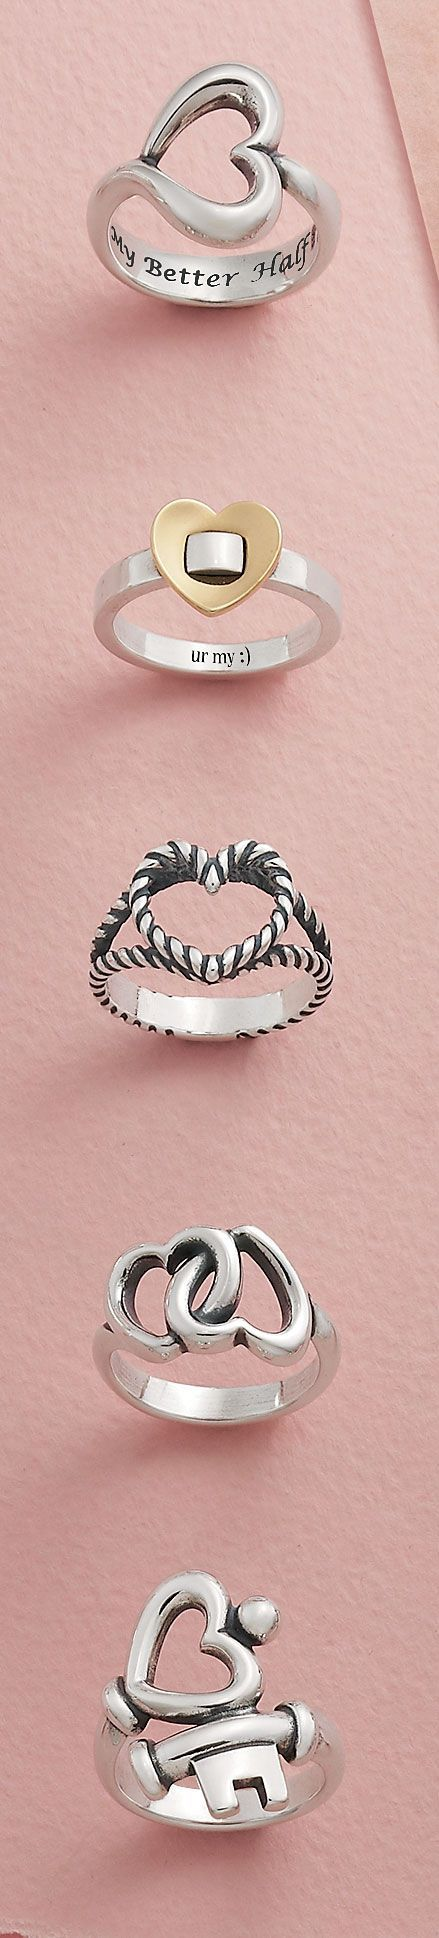 40 best James Avery images on Pinterest | James avery rings, Jewel ...